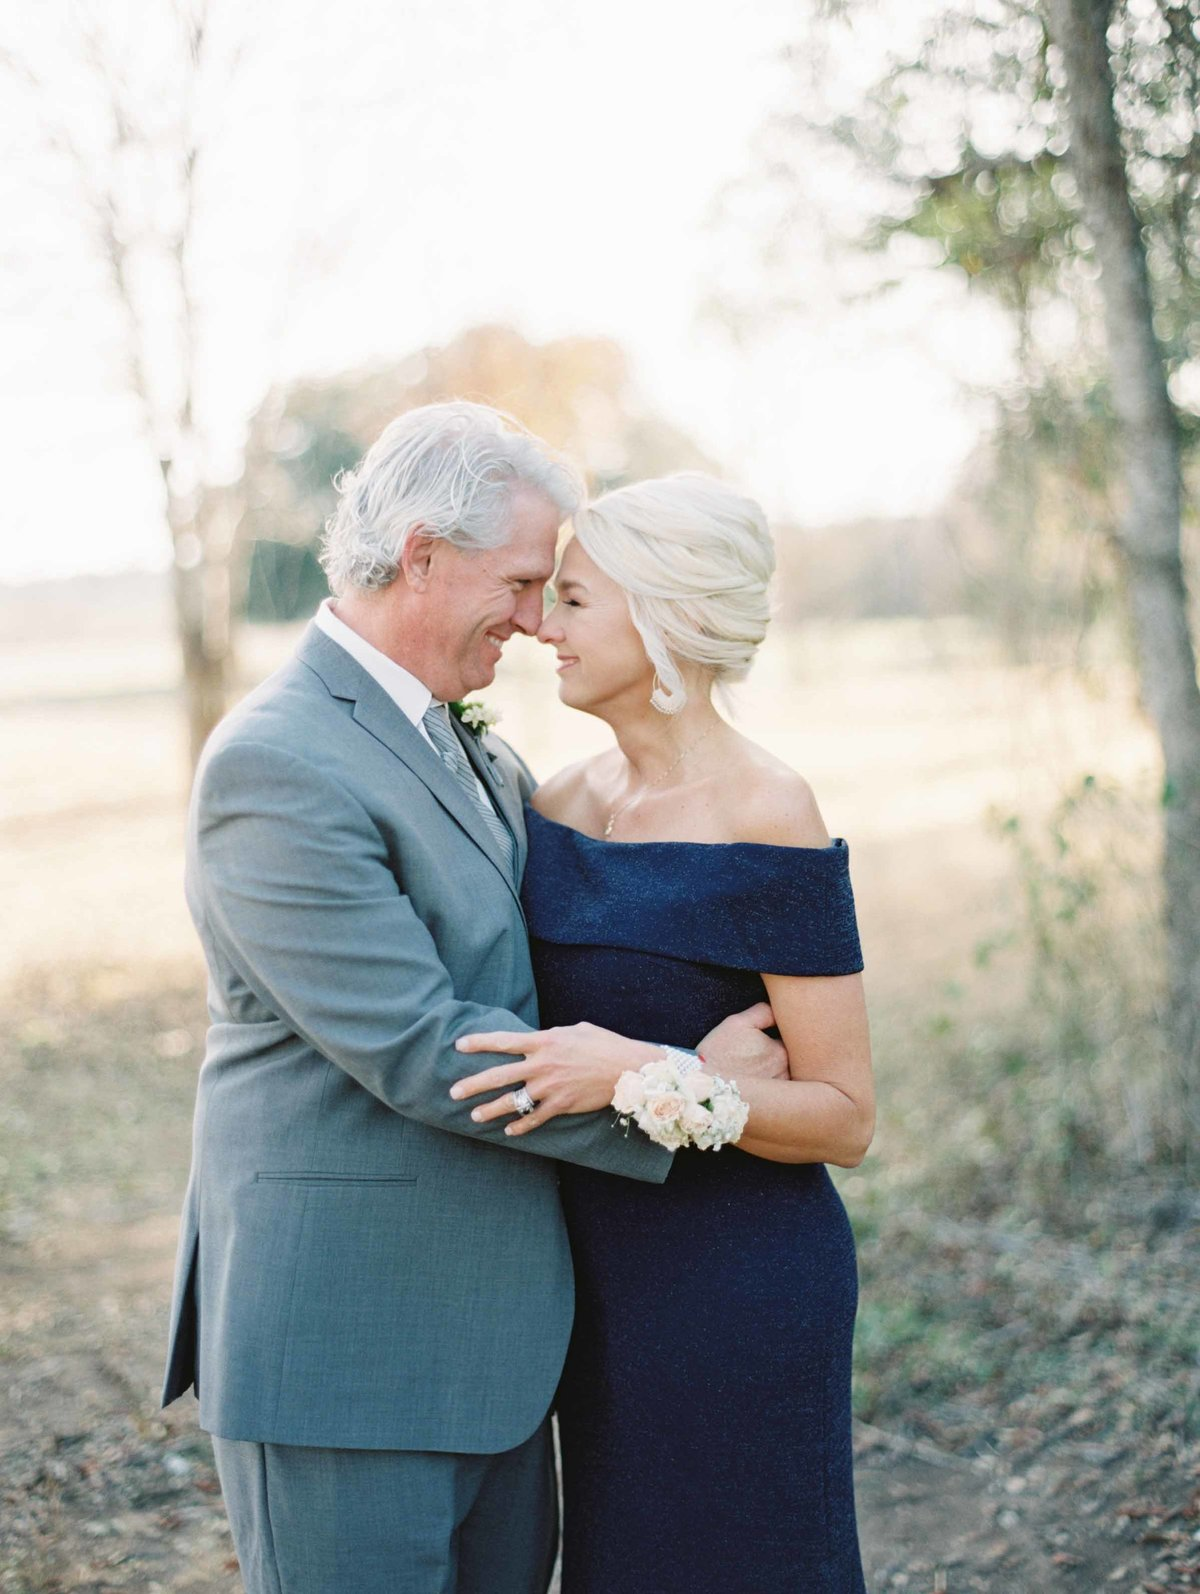 Angel_owens_photography_wedding38